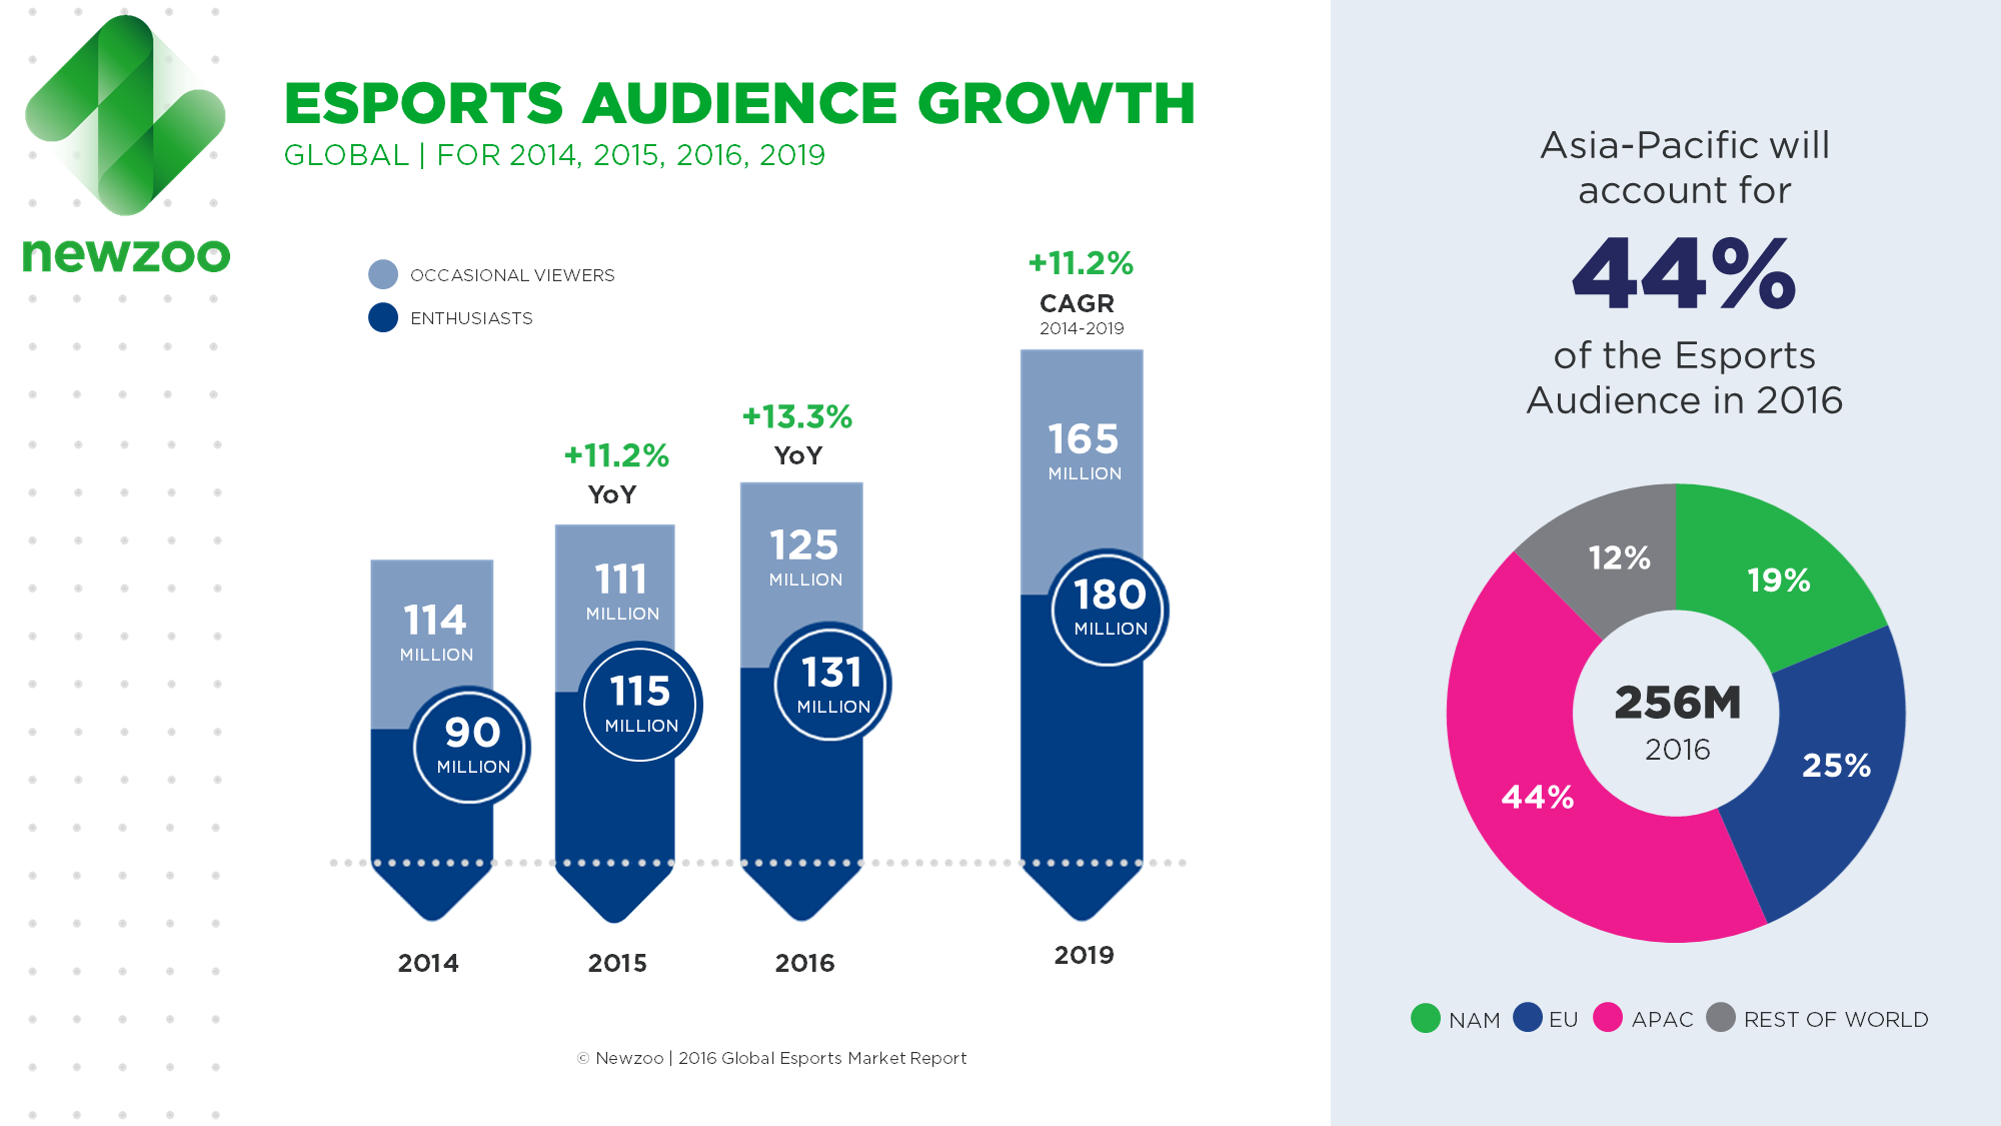 Newzoo_Esports_Report_2016_Audience_Growth_V4